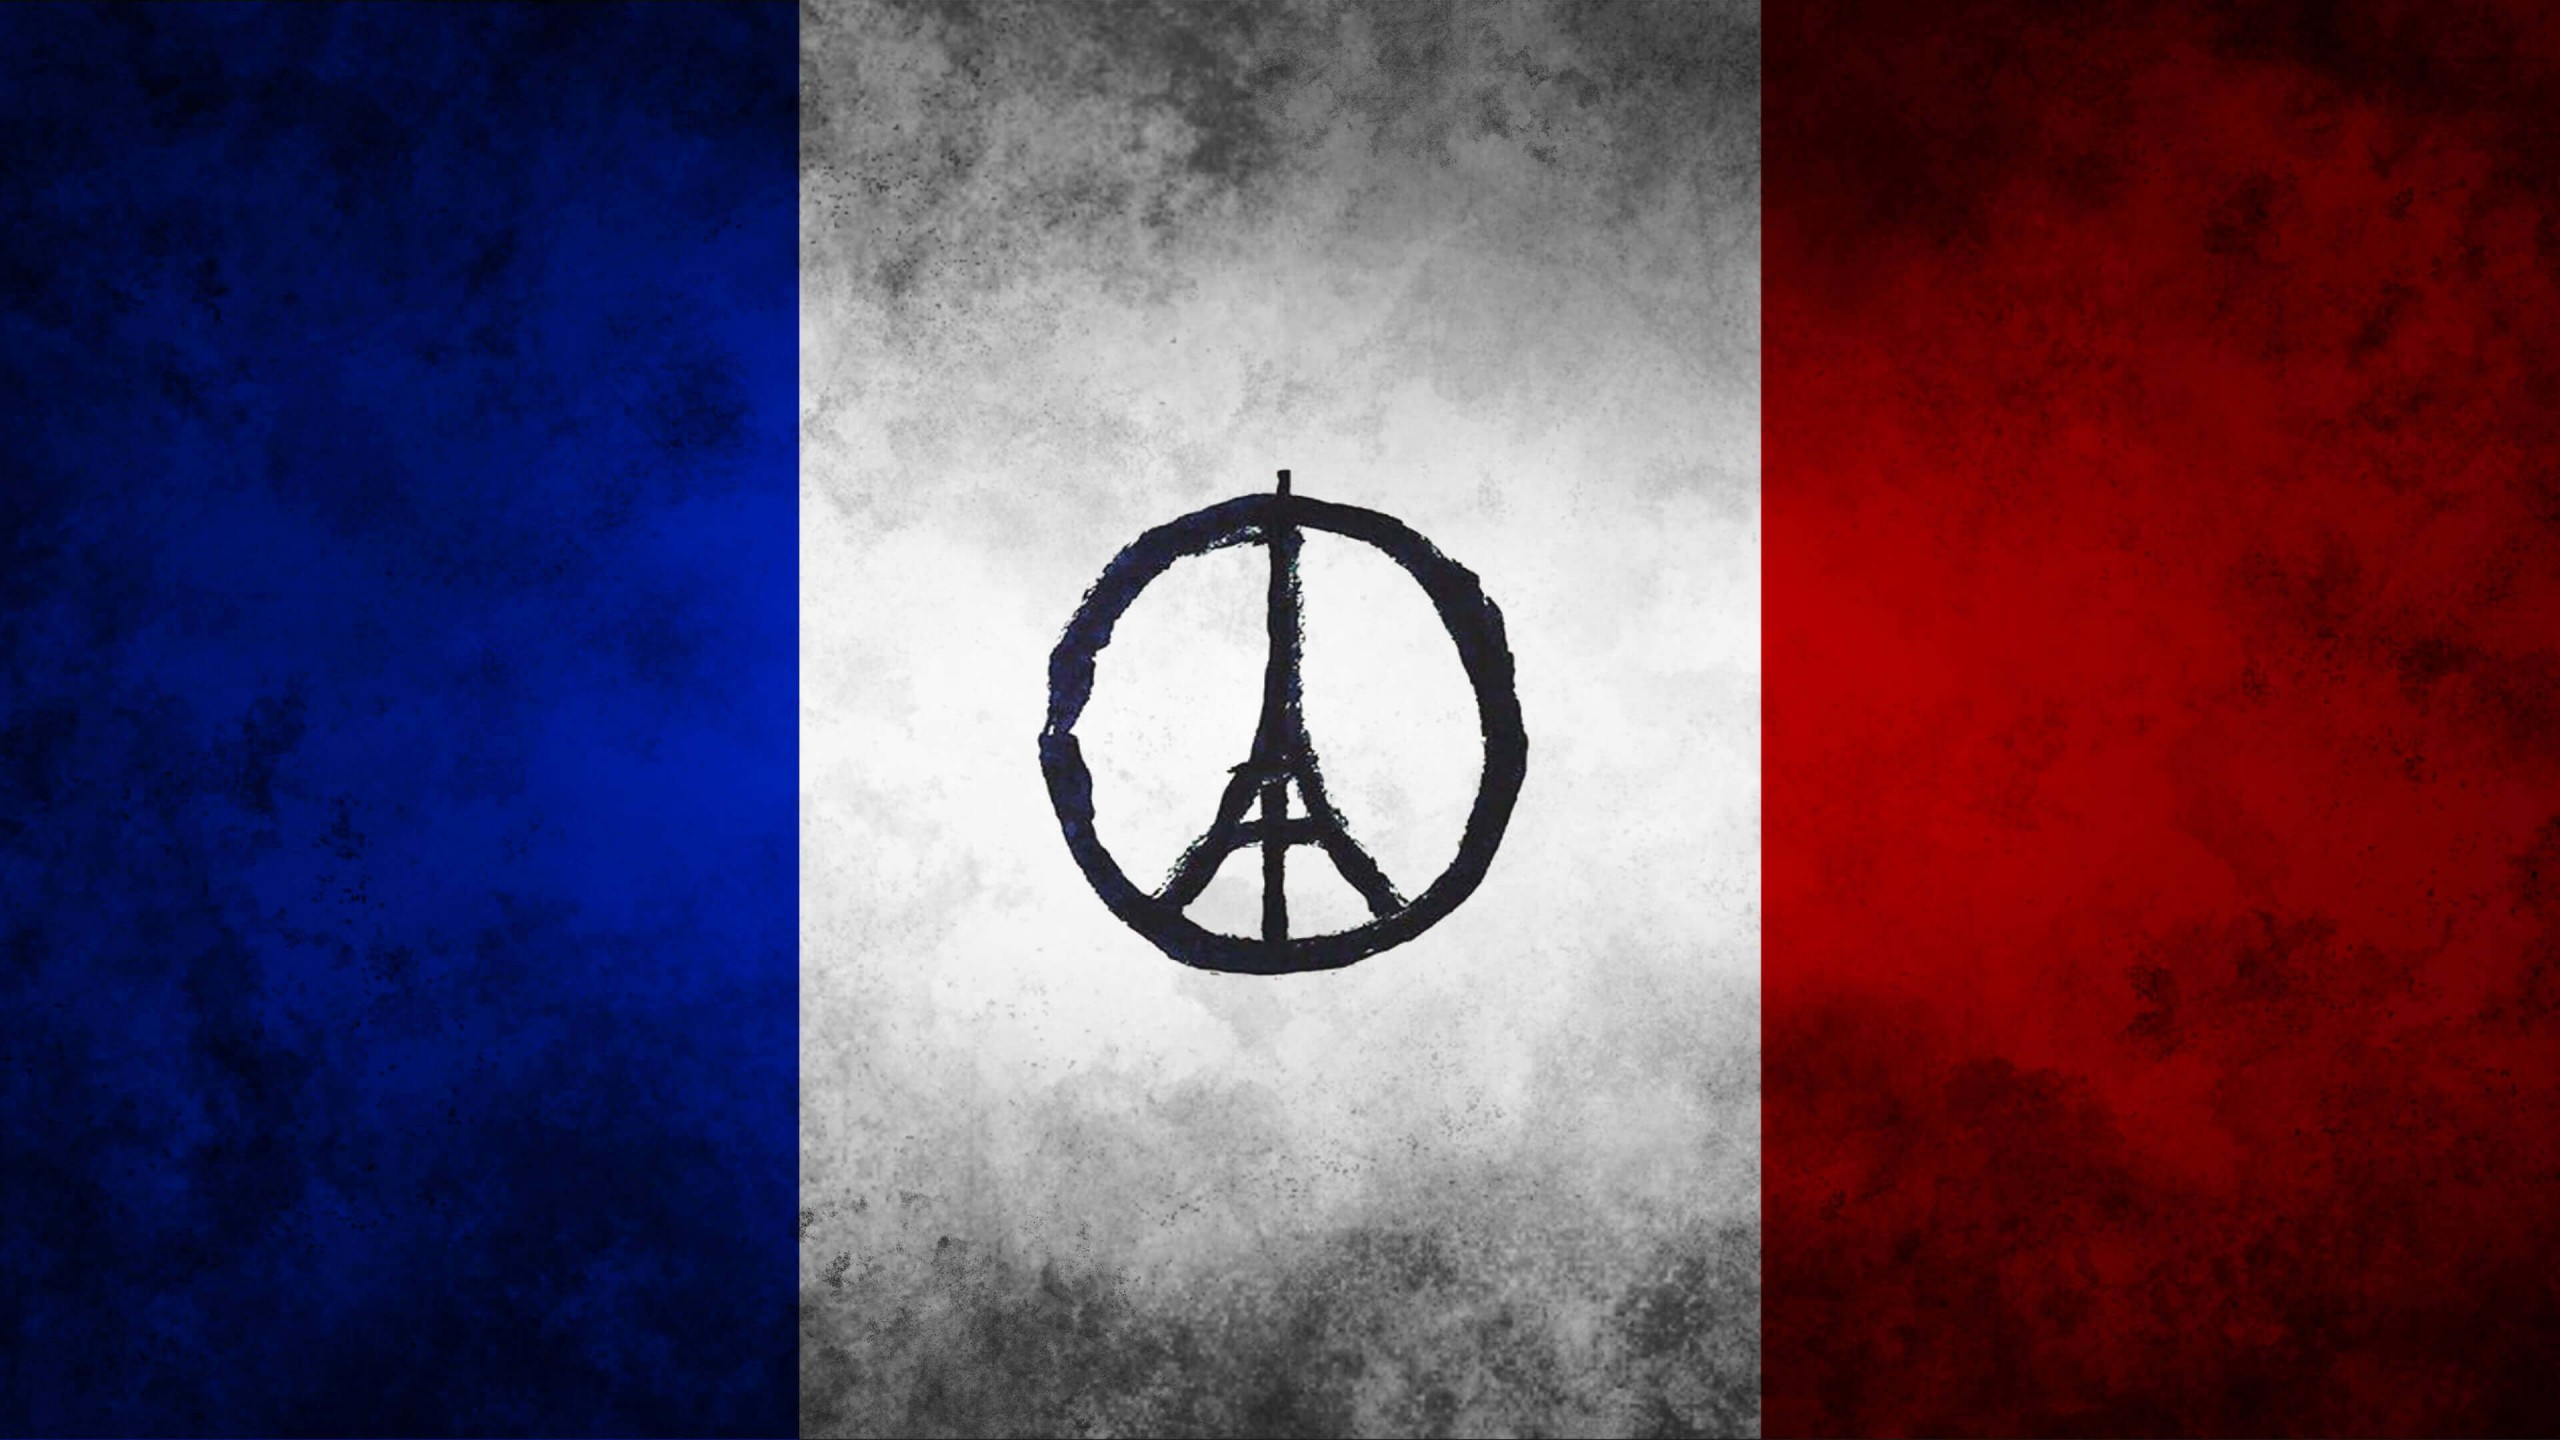 Download pray for paris hd wallpaper for 2560 x 1440 for Wallpaper for